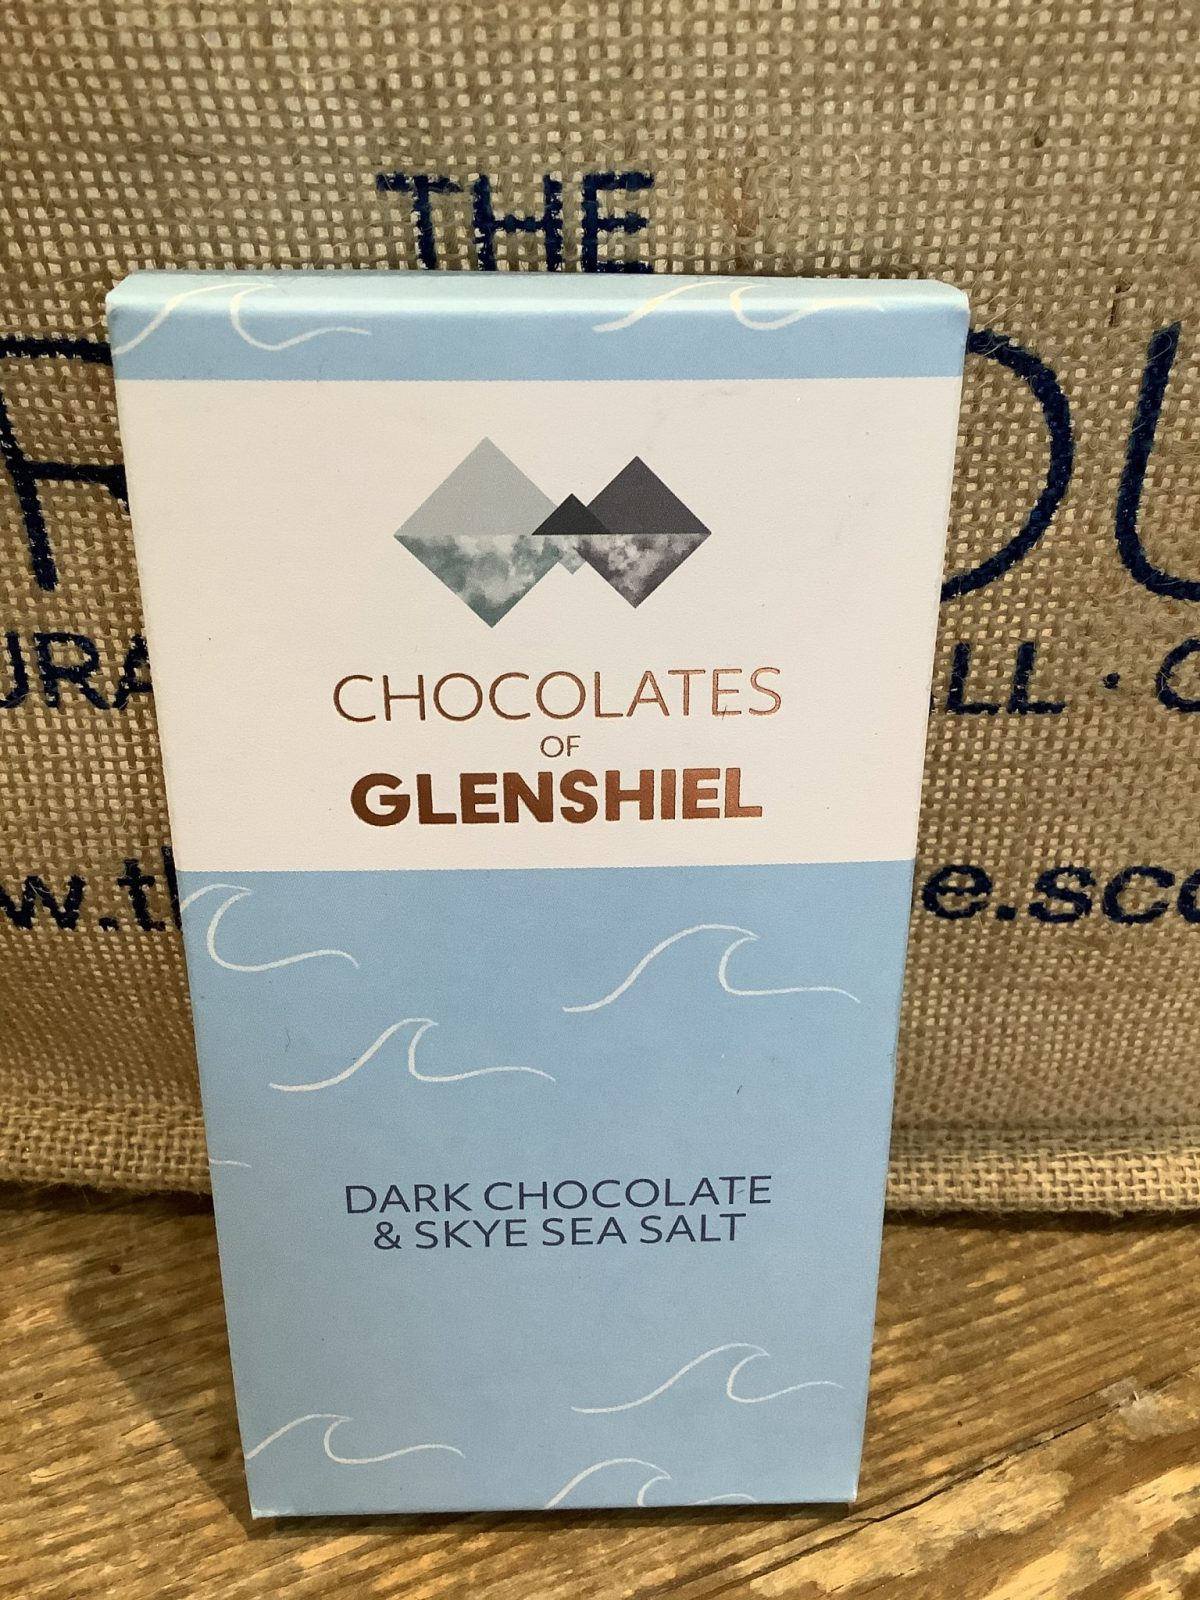 Dark Chocolate & Skye Sea Salt